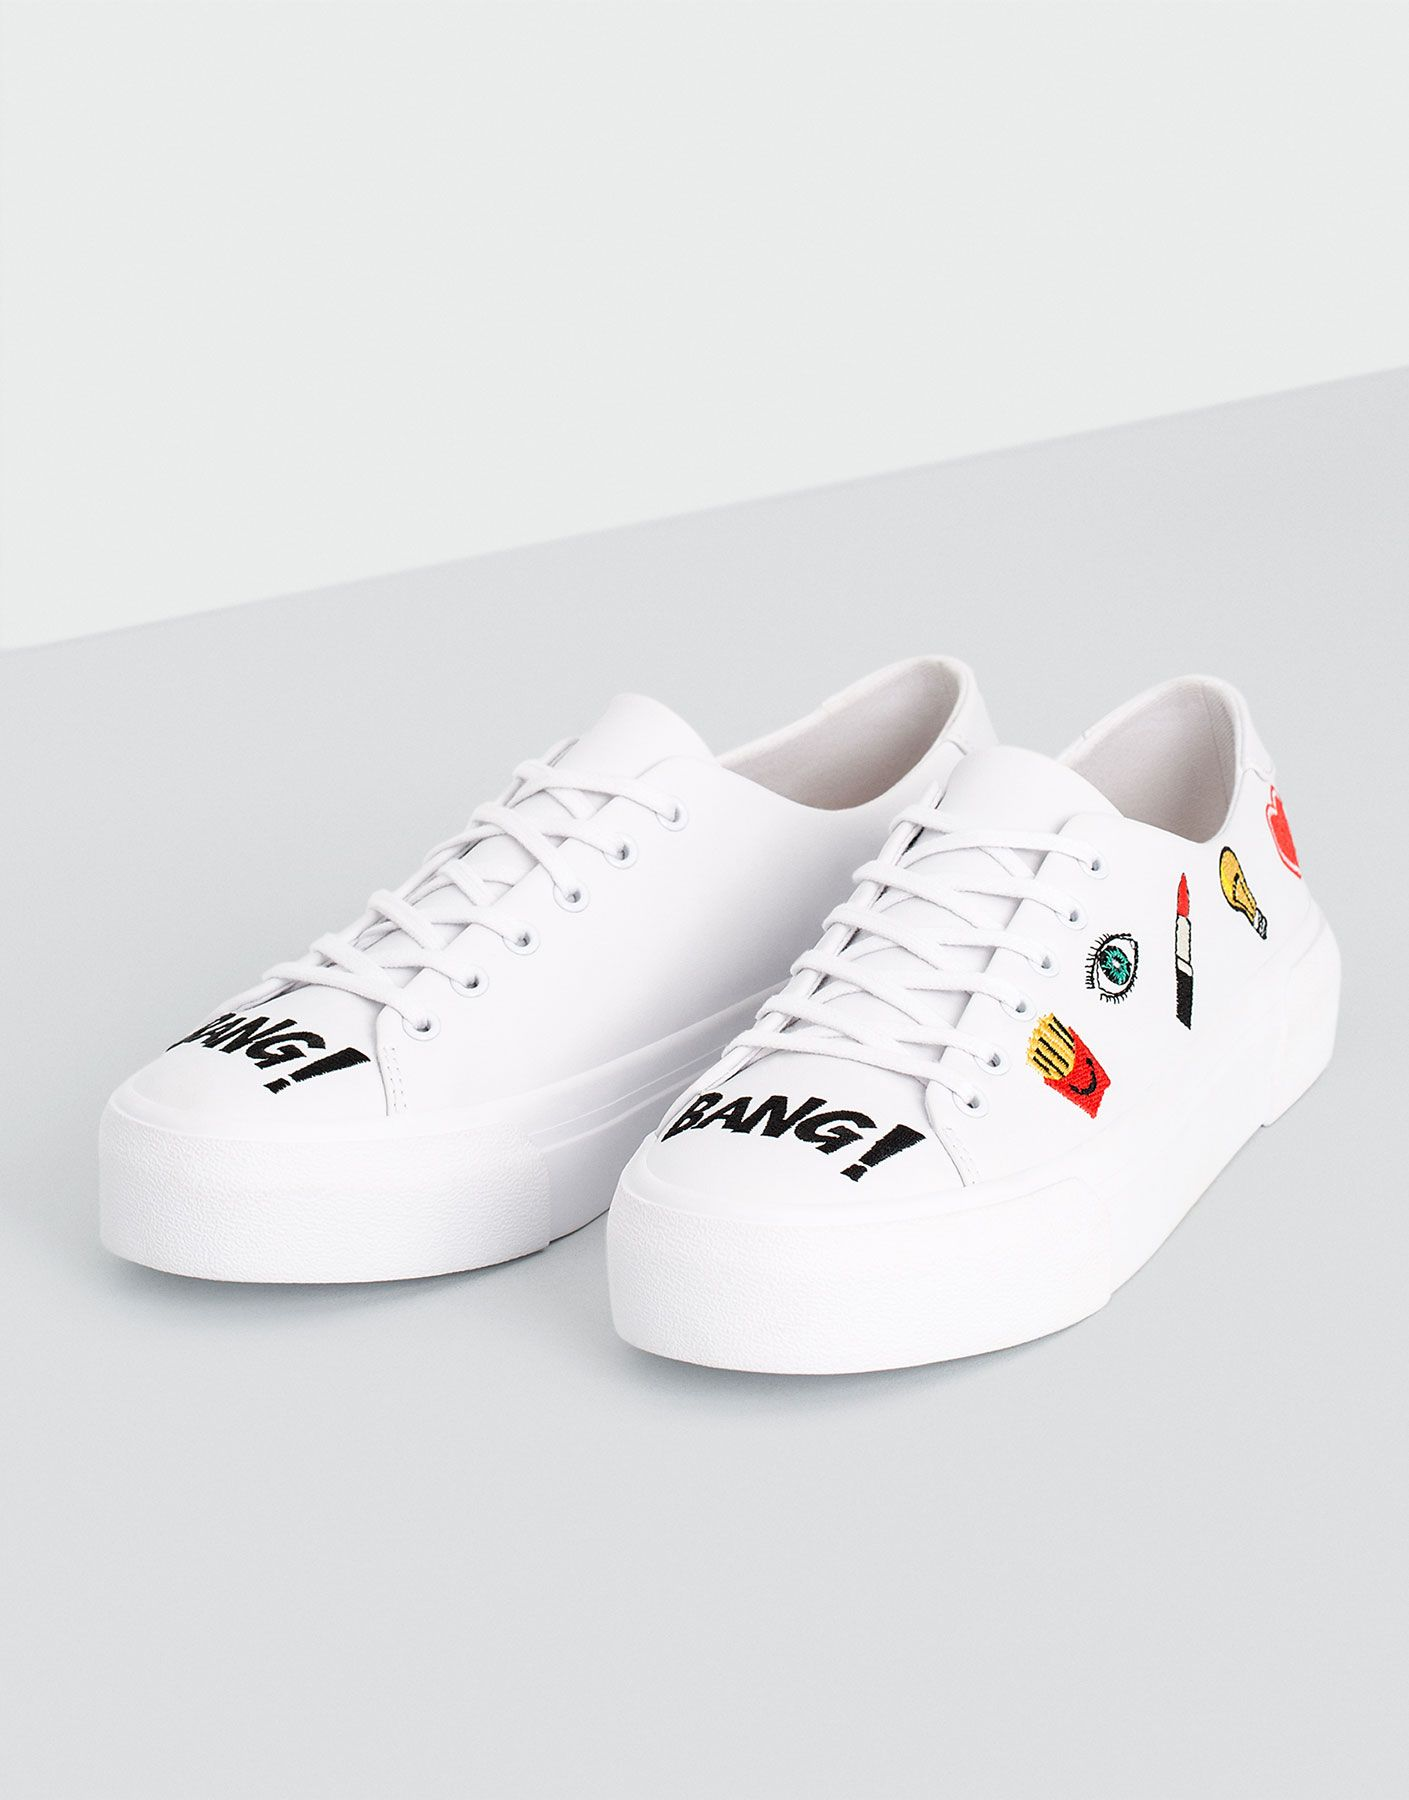 promo code 71ced 88287 WHITE PATCHES PLIMSOLLS - WOMEN S SHOES - WOMAN - PULL BEAR China